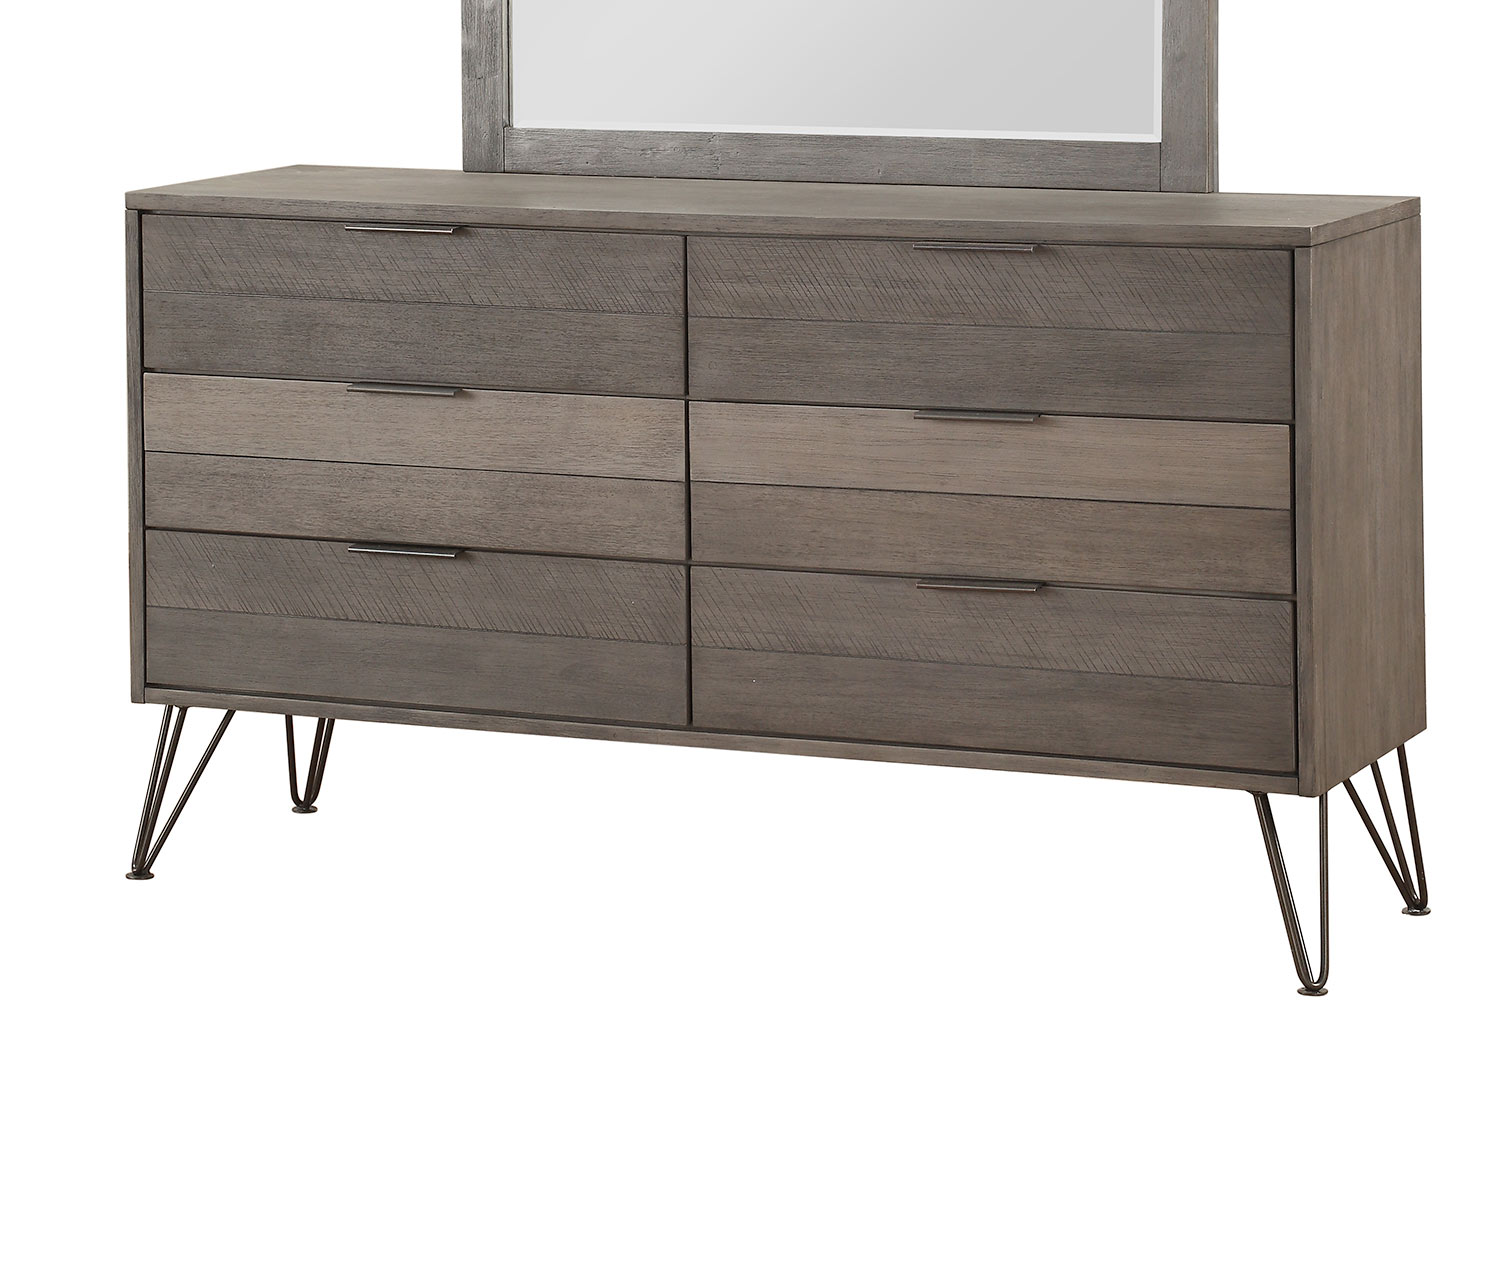 Homelegance Urbanite Dresser - Brown-Gray